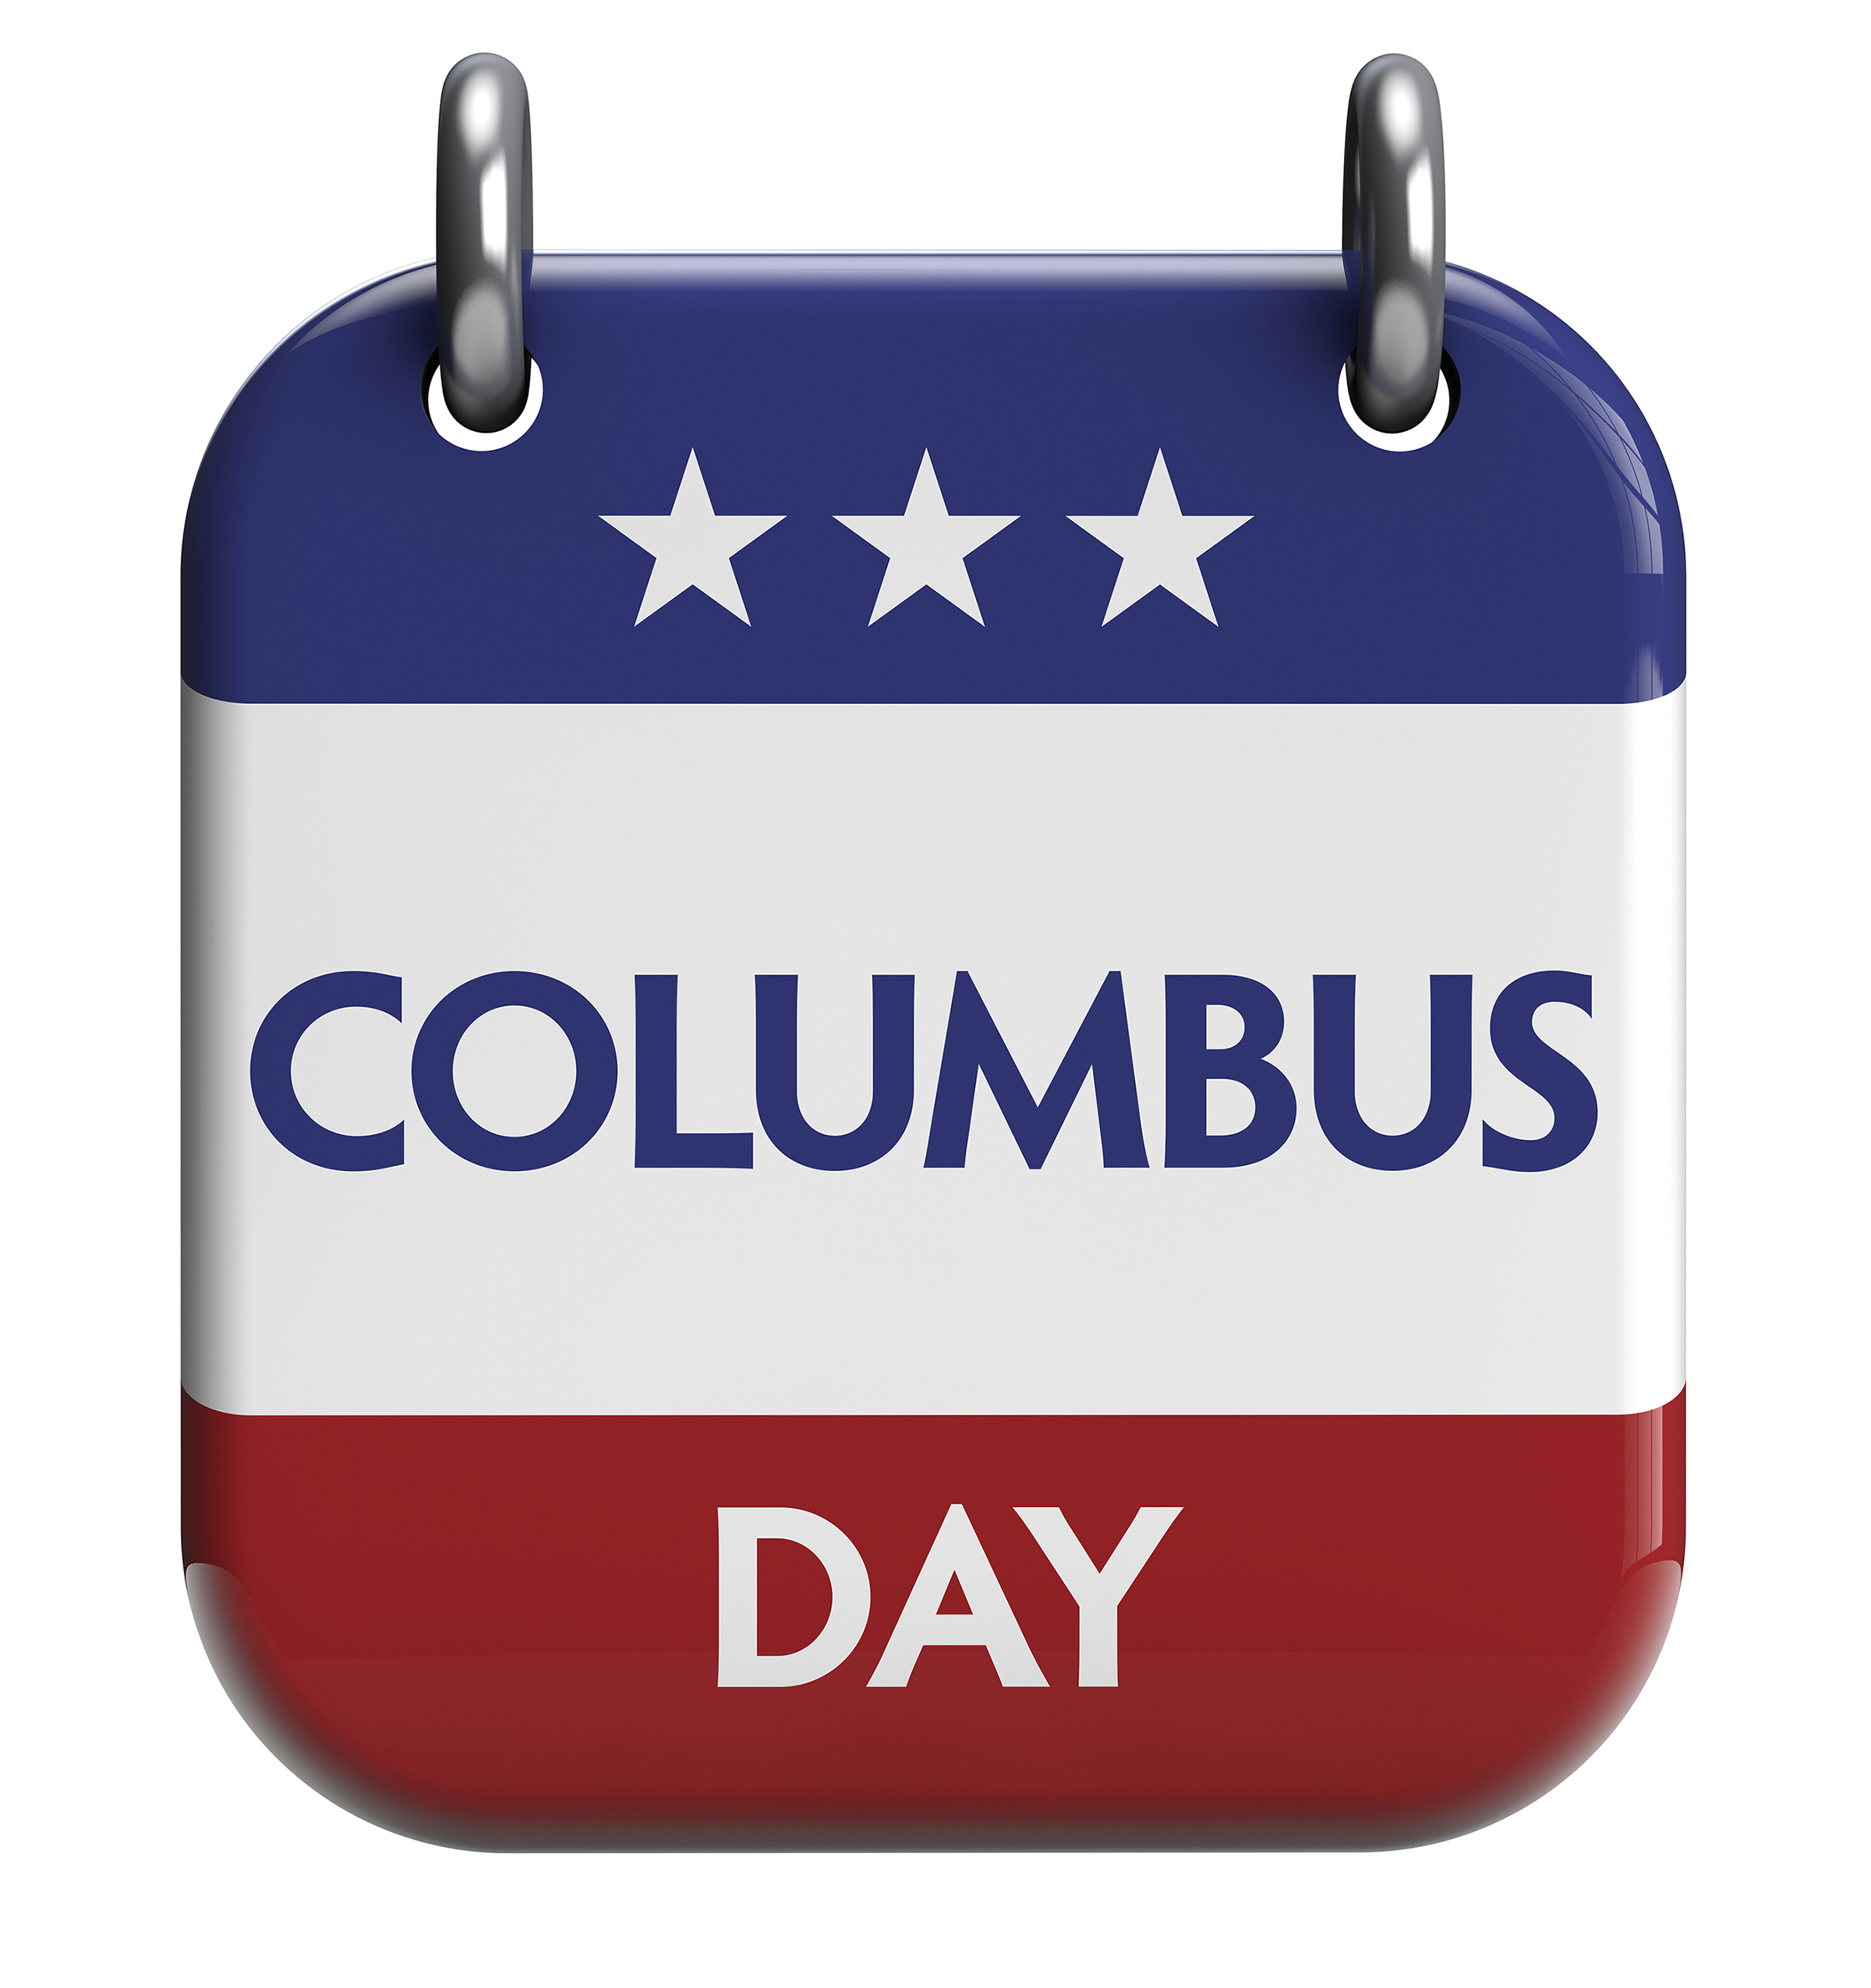 colombus day Columbus day is a national holiday in many countries of the americas and elsewhere which officially celebrates the anniversary of christopher columbus's arrival in the americas on october 12, 1492.